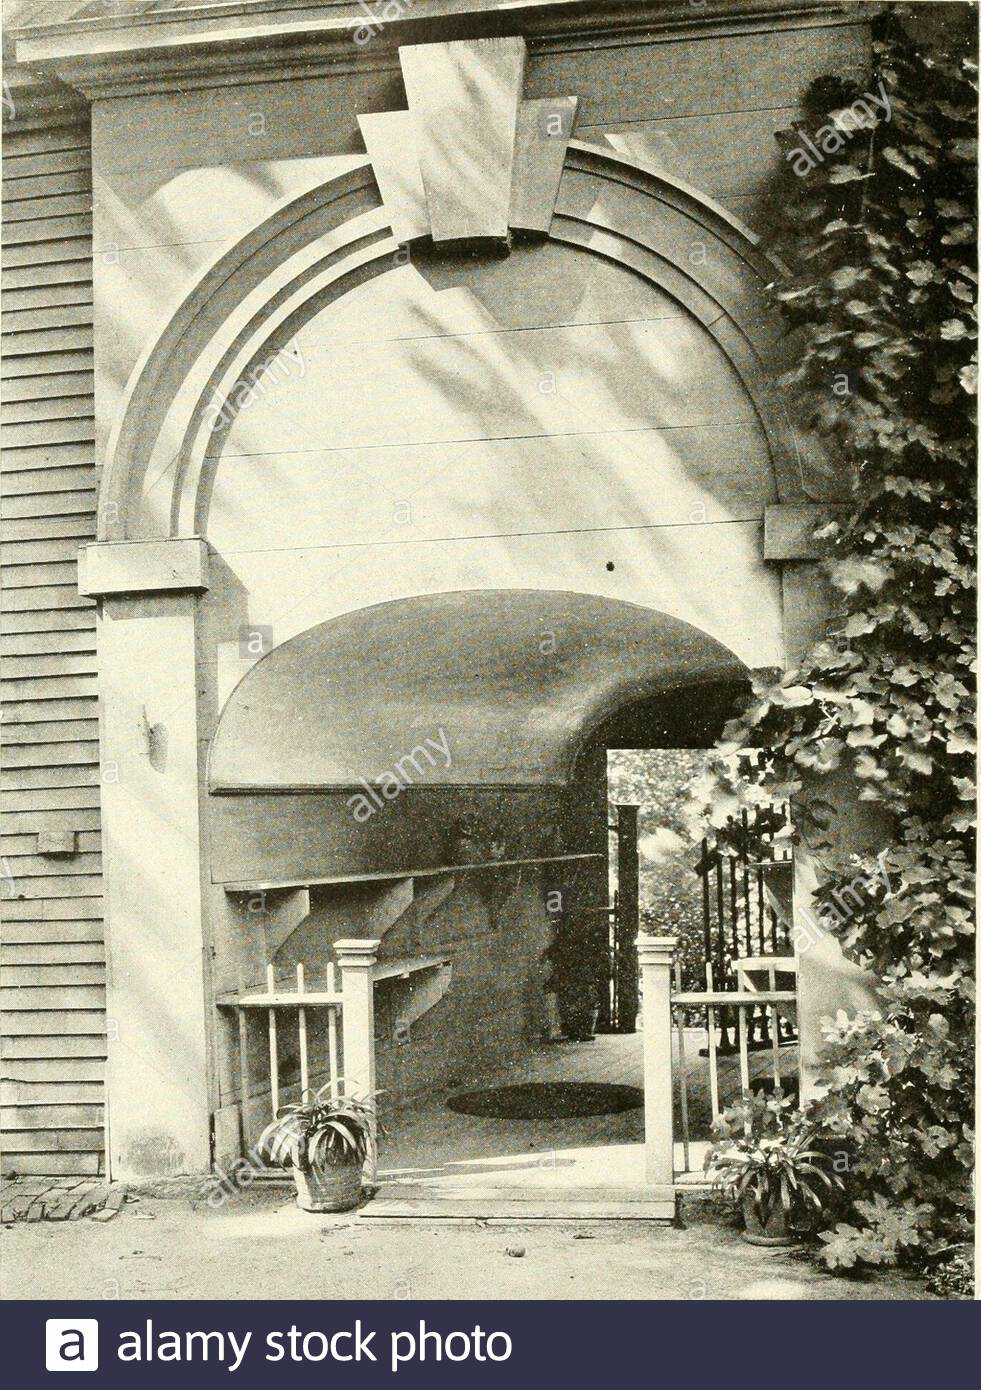 the livable house its garden a wall fountain binedwith a pool garden of mr h h rogers at tuxedo new yorkwalker and gillette architects ifc9 t h l i v a b i h o u s i i a garden entrance for whosechar m age is responsible house at so federal street salem massachusettssamuel mclntyre architect 1782 170 g a d n 2AXC3CD